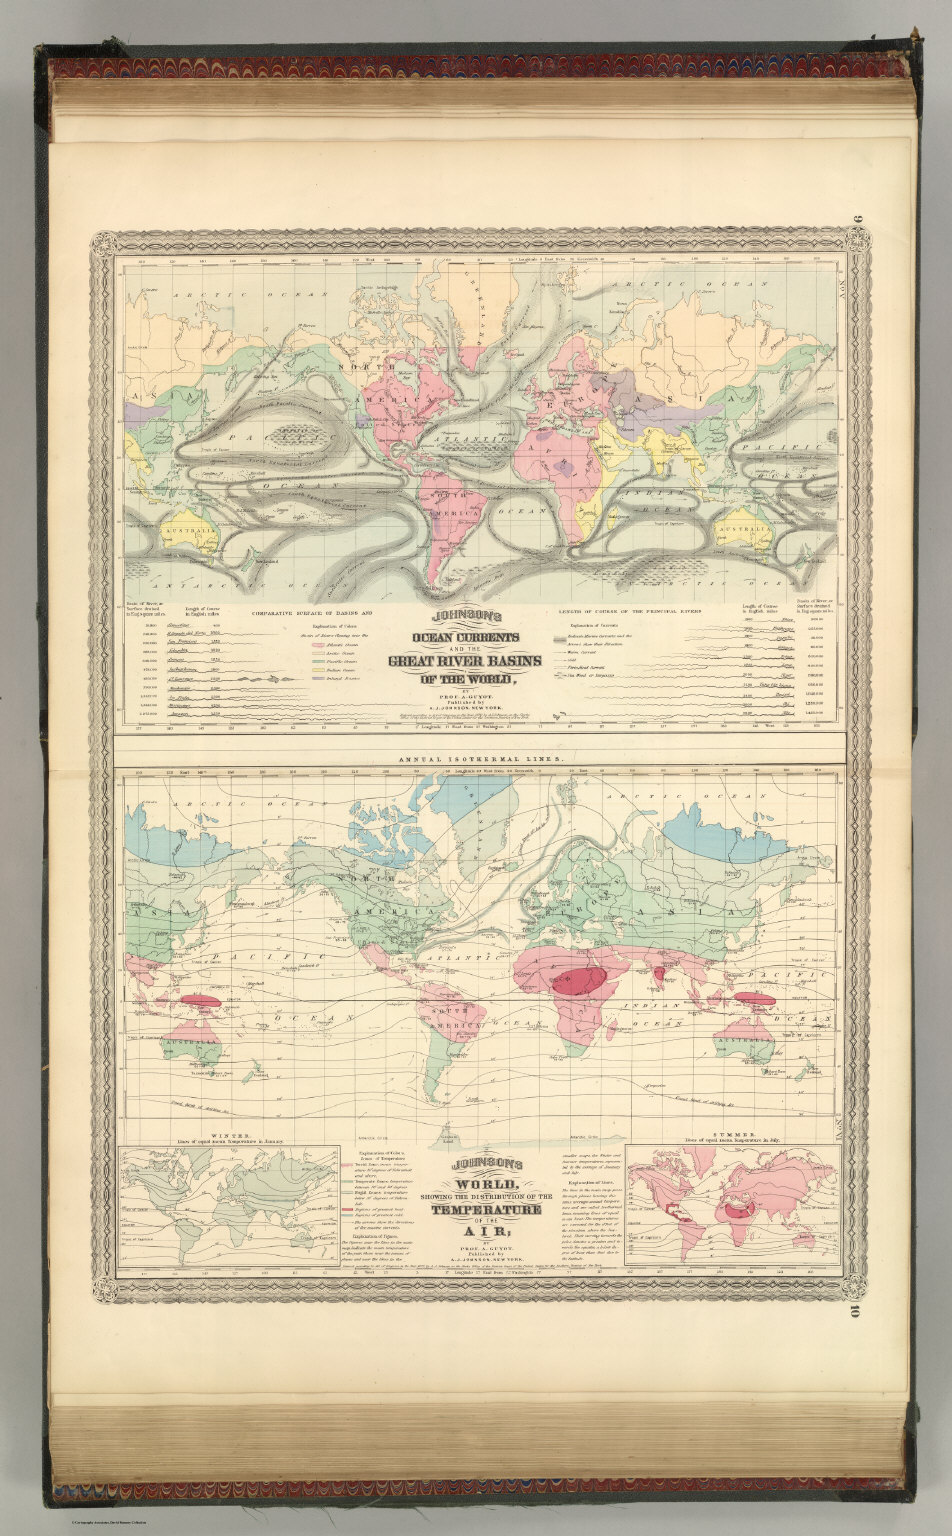 Ocean Currents and the Great River Basins of The World.